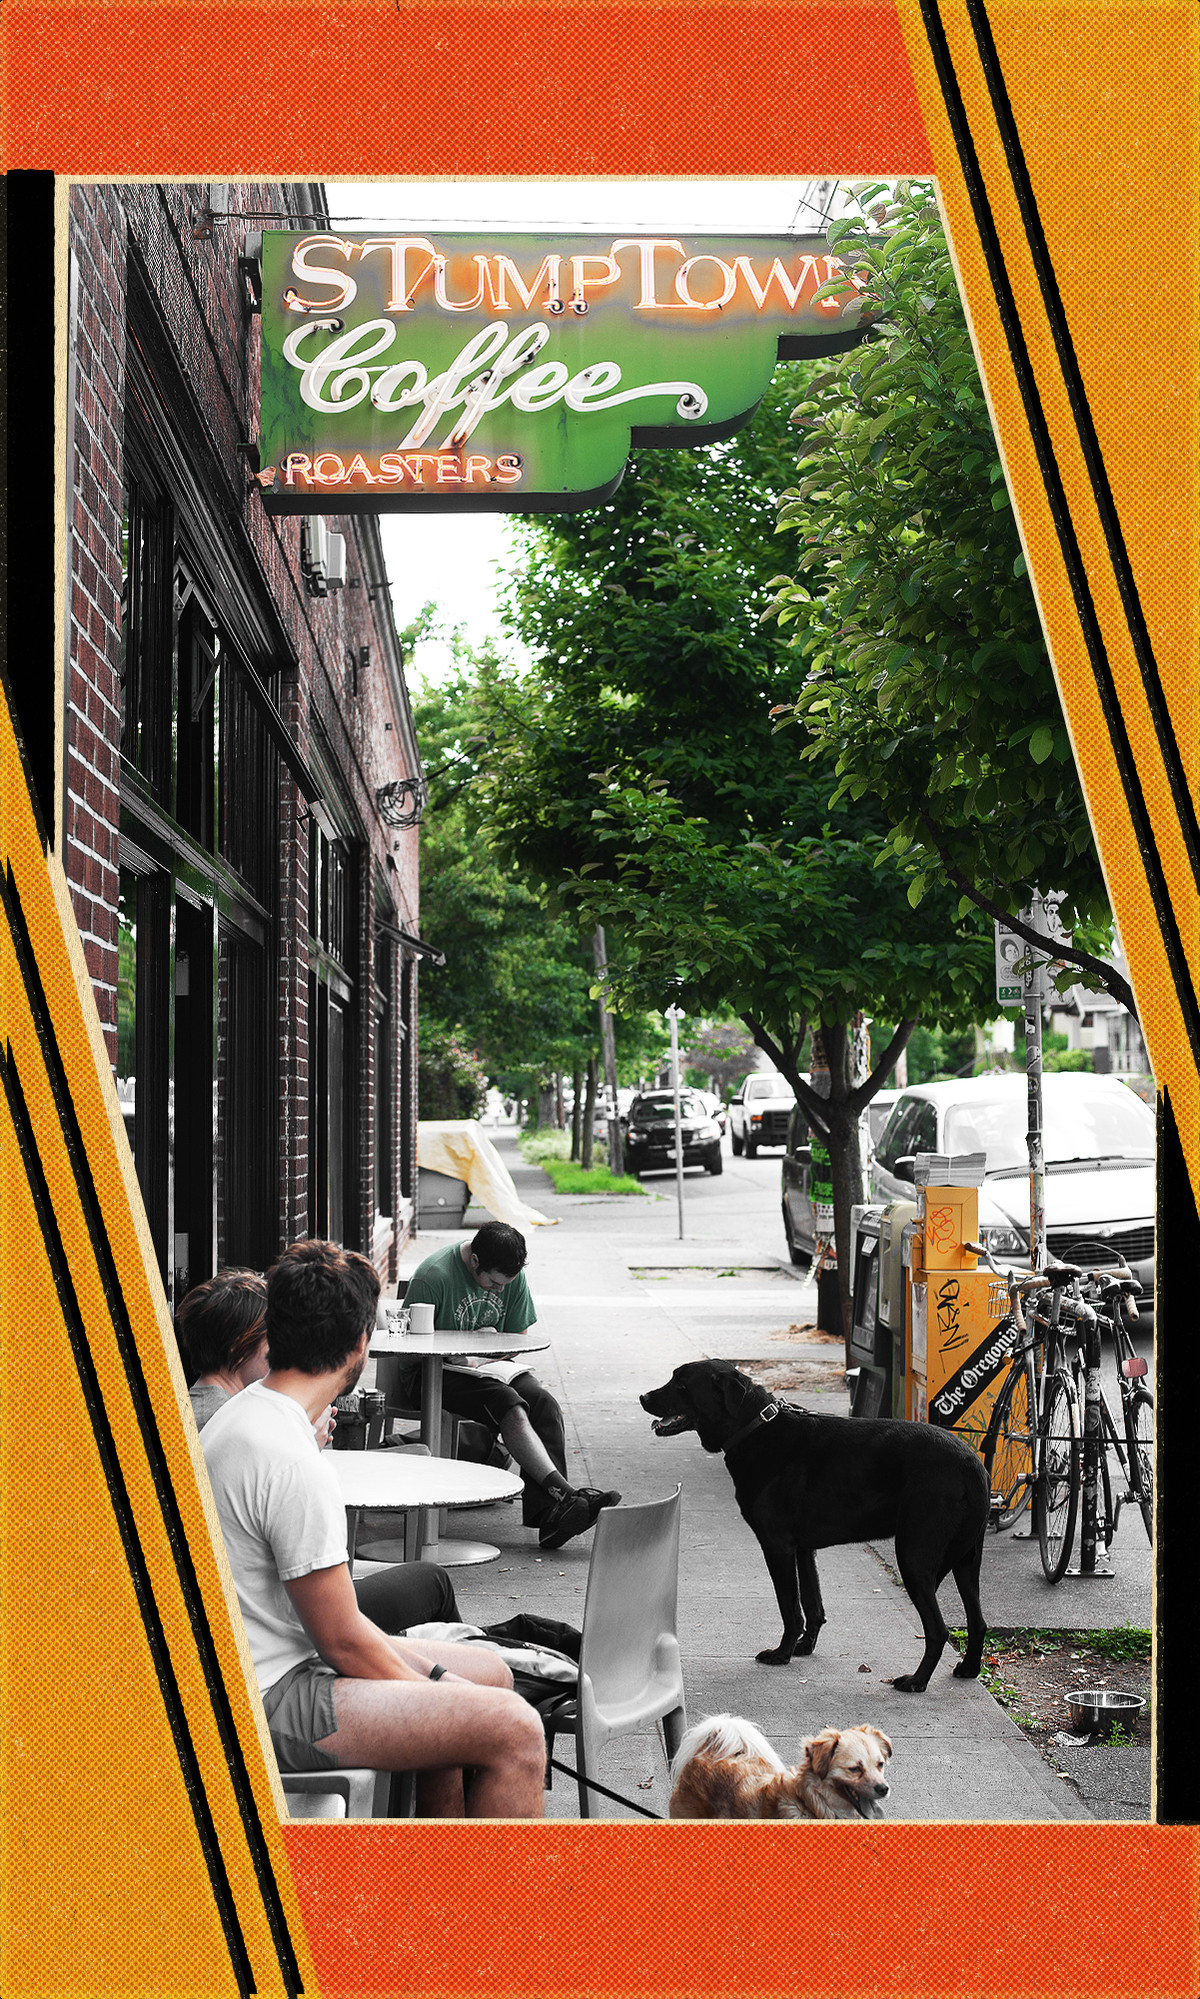 """People sit at white tables outside a cafe with dogs. An old-fashioned green, red, and white sign reads """"Stumptown coffee"""""""